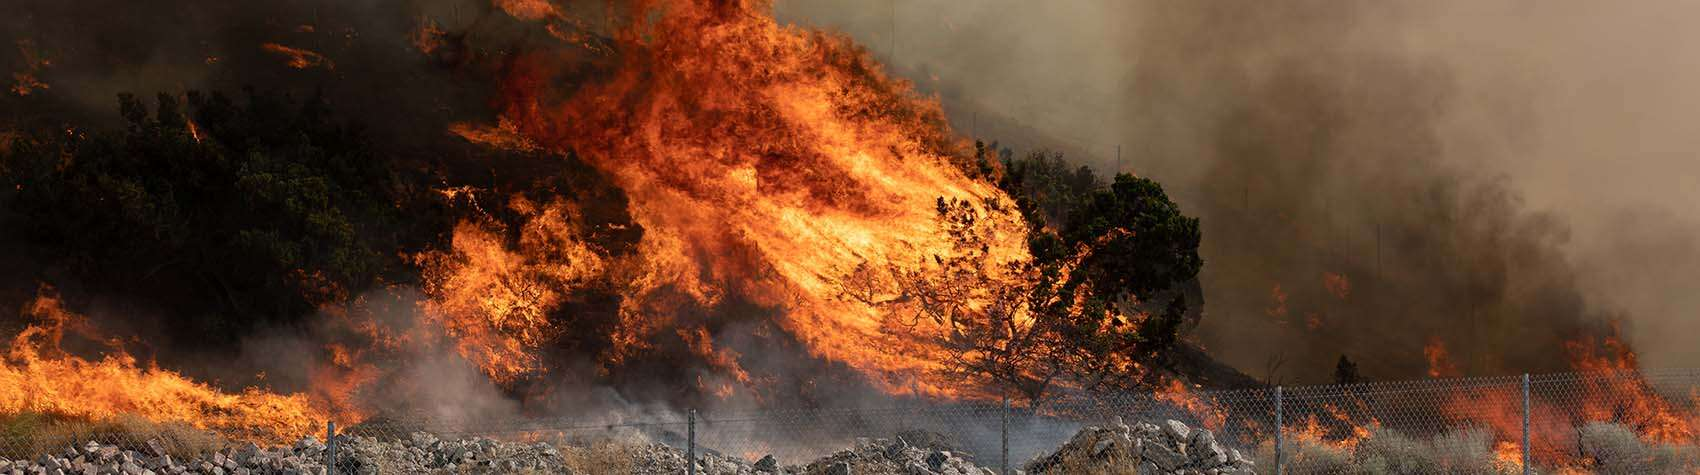 A wildfire spreads across a region in California.